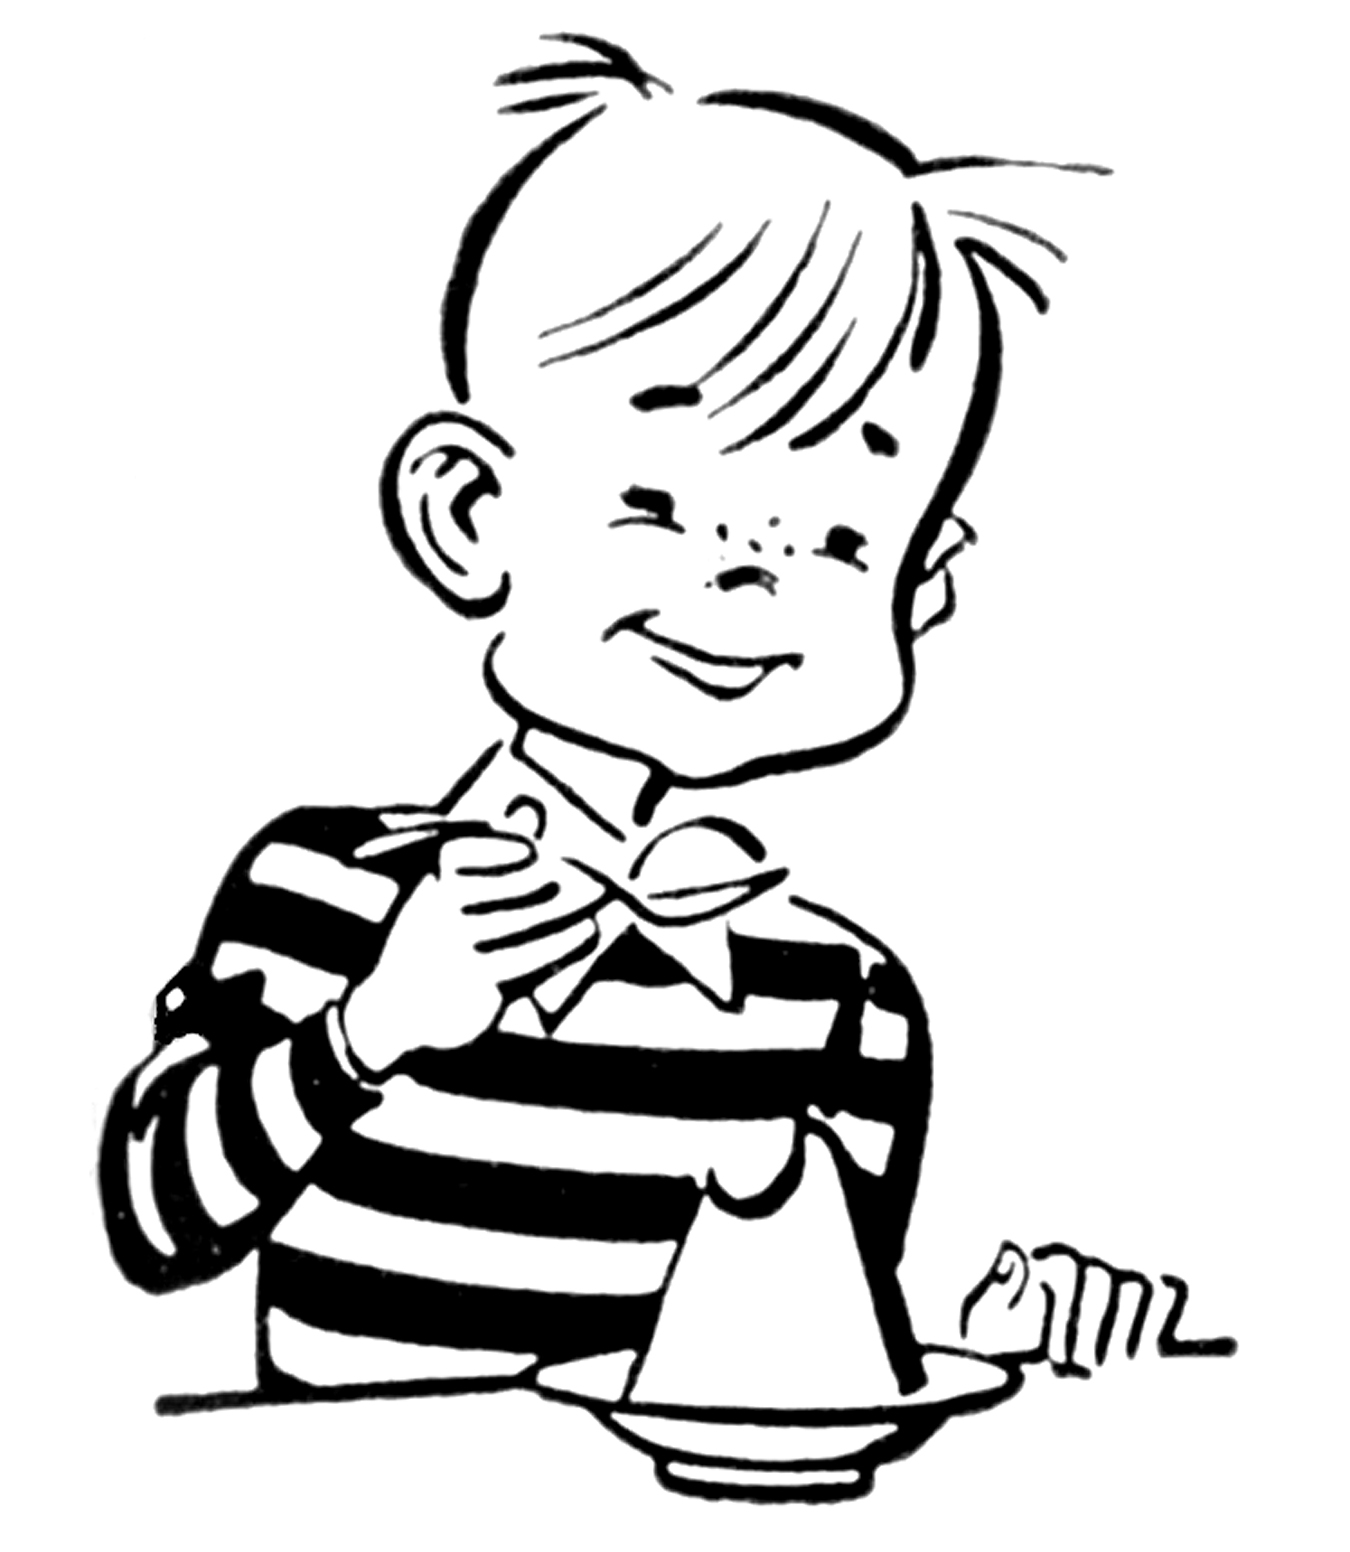 Eating ice cream clipart black and white jpg black and white Kid Eating Clipart Black And White | Clipart Panda - Free Clipart Images jpg black and white